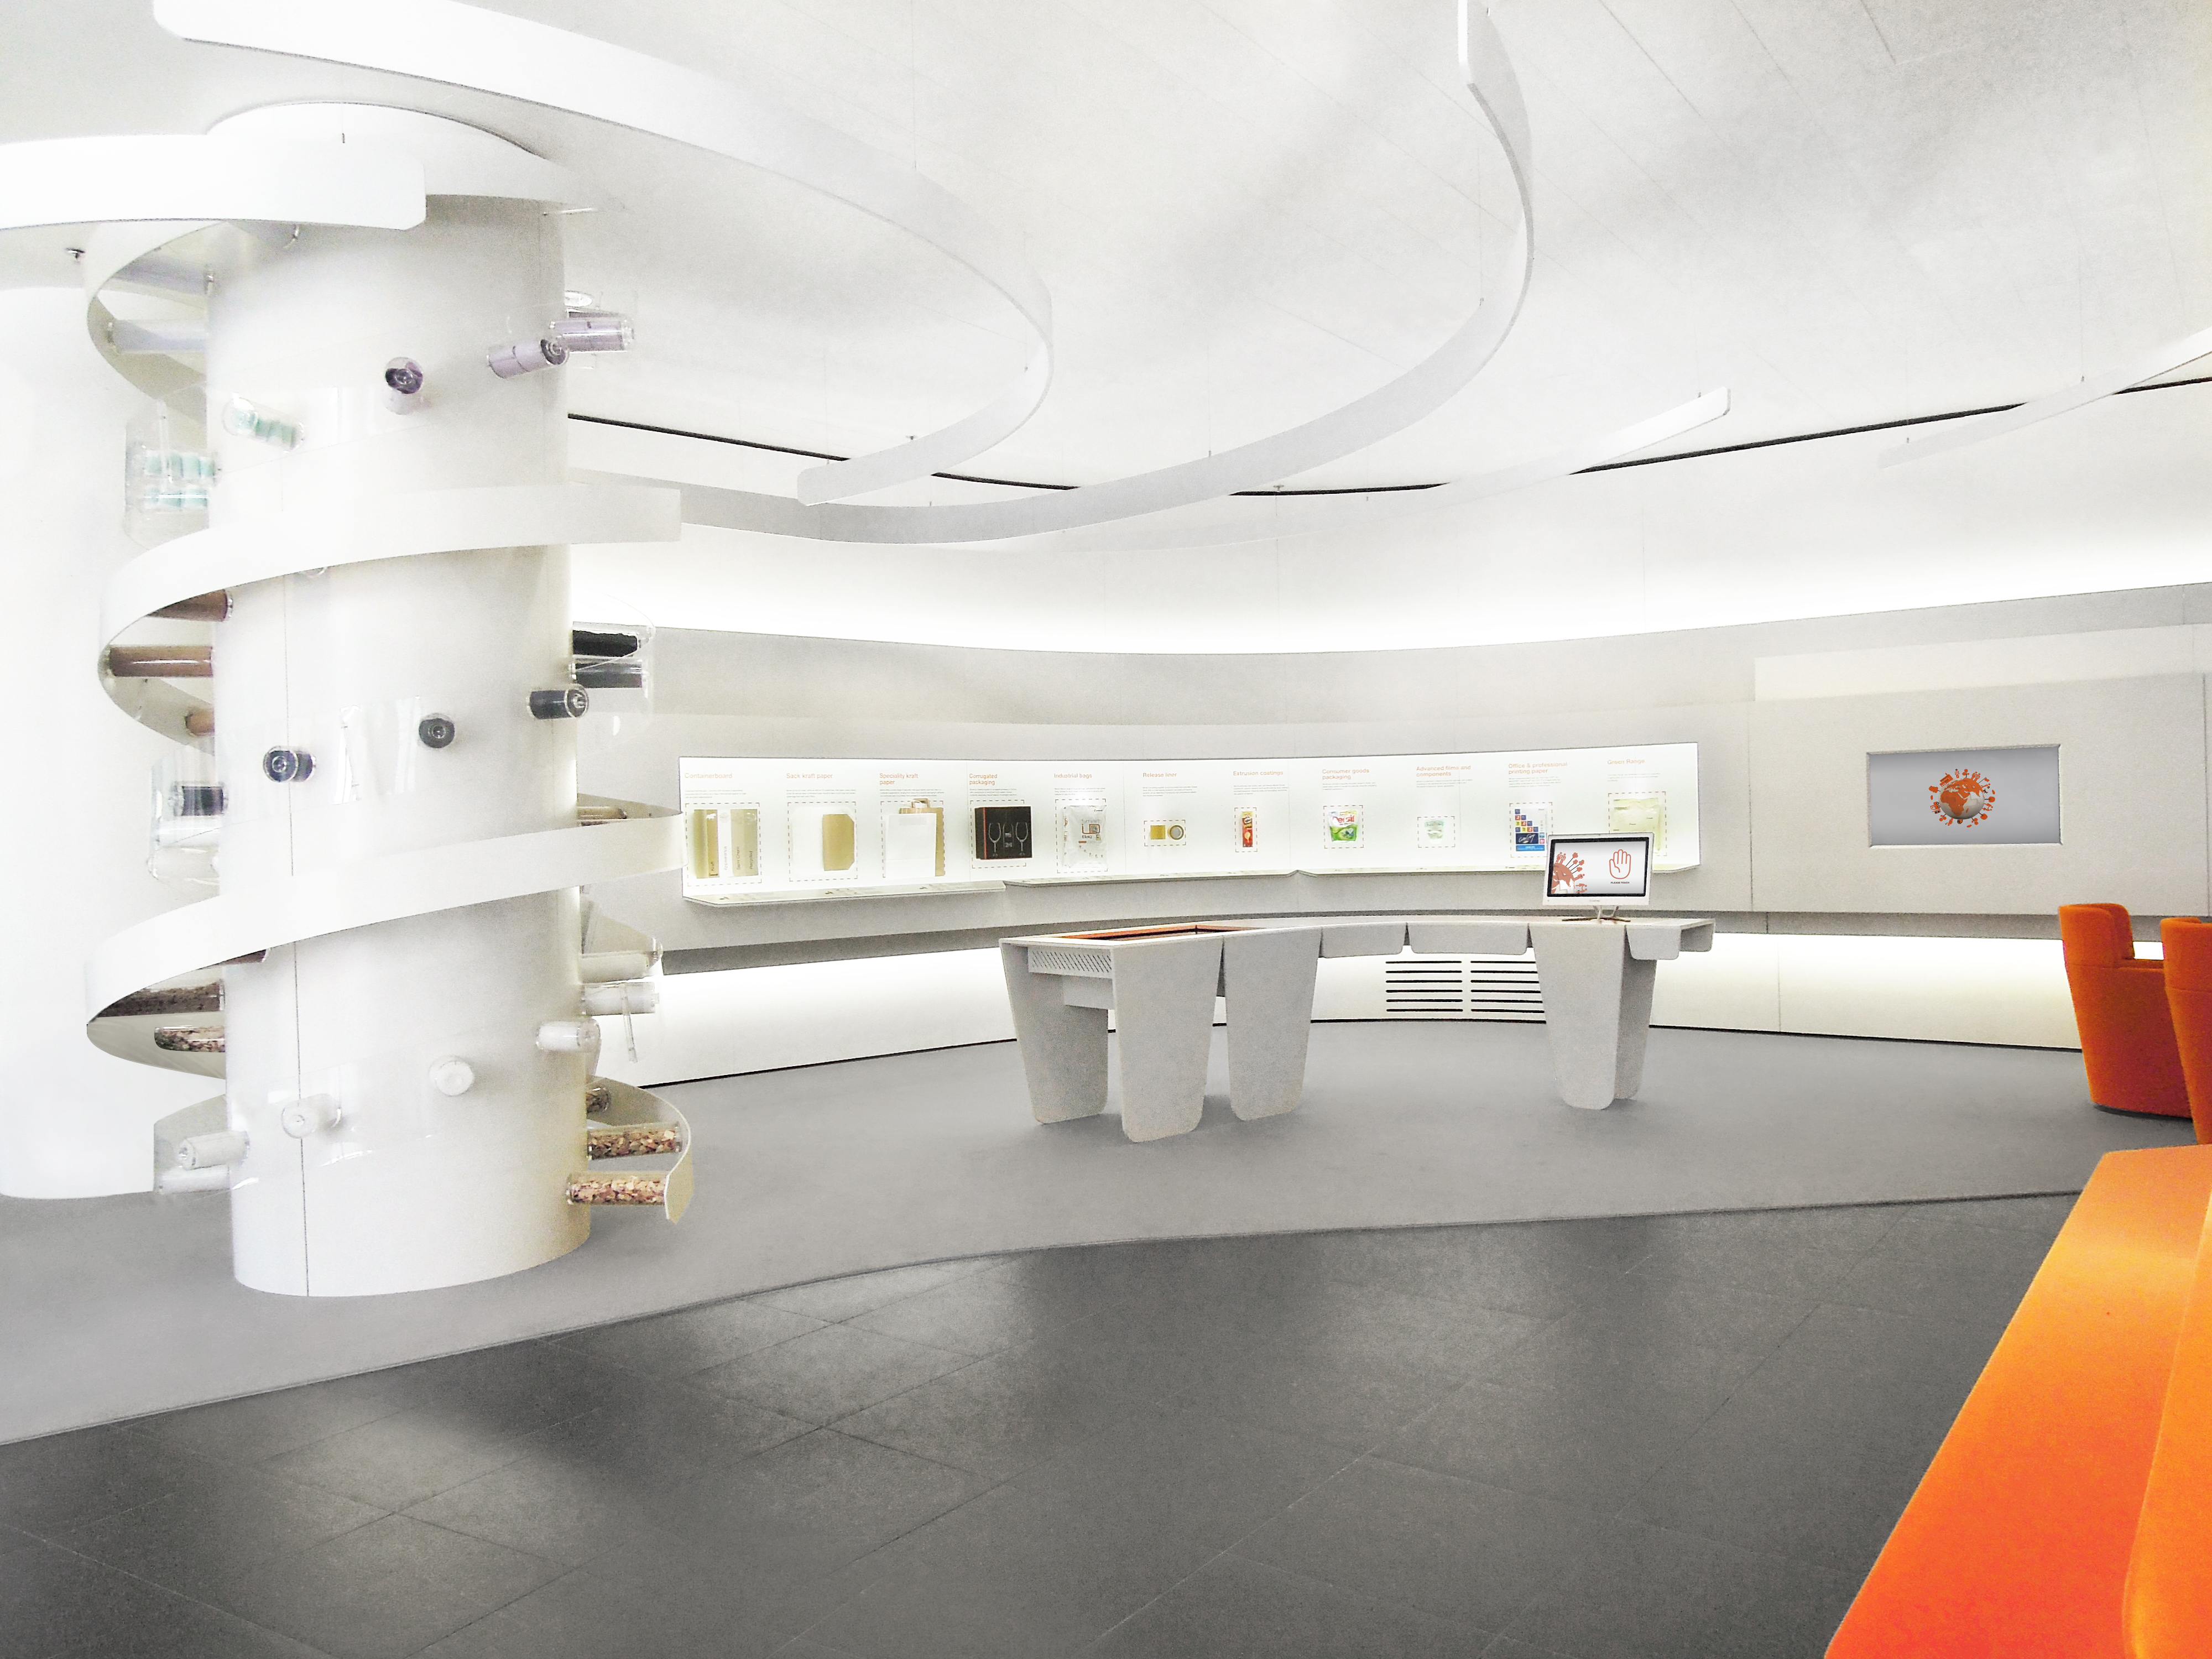 Foyer Mondi Exhibition with DNA-shaped column and view of product wall